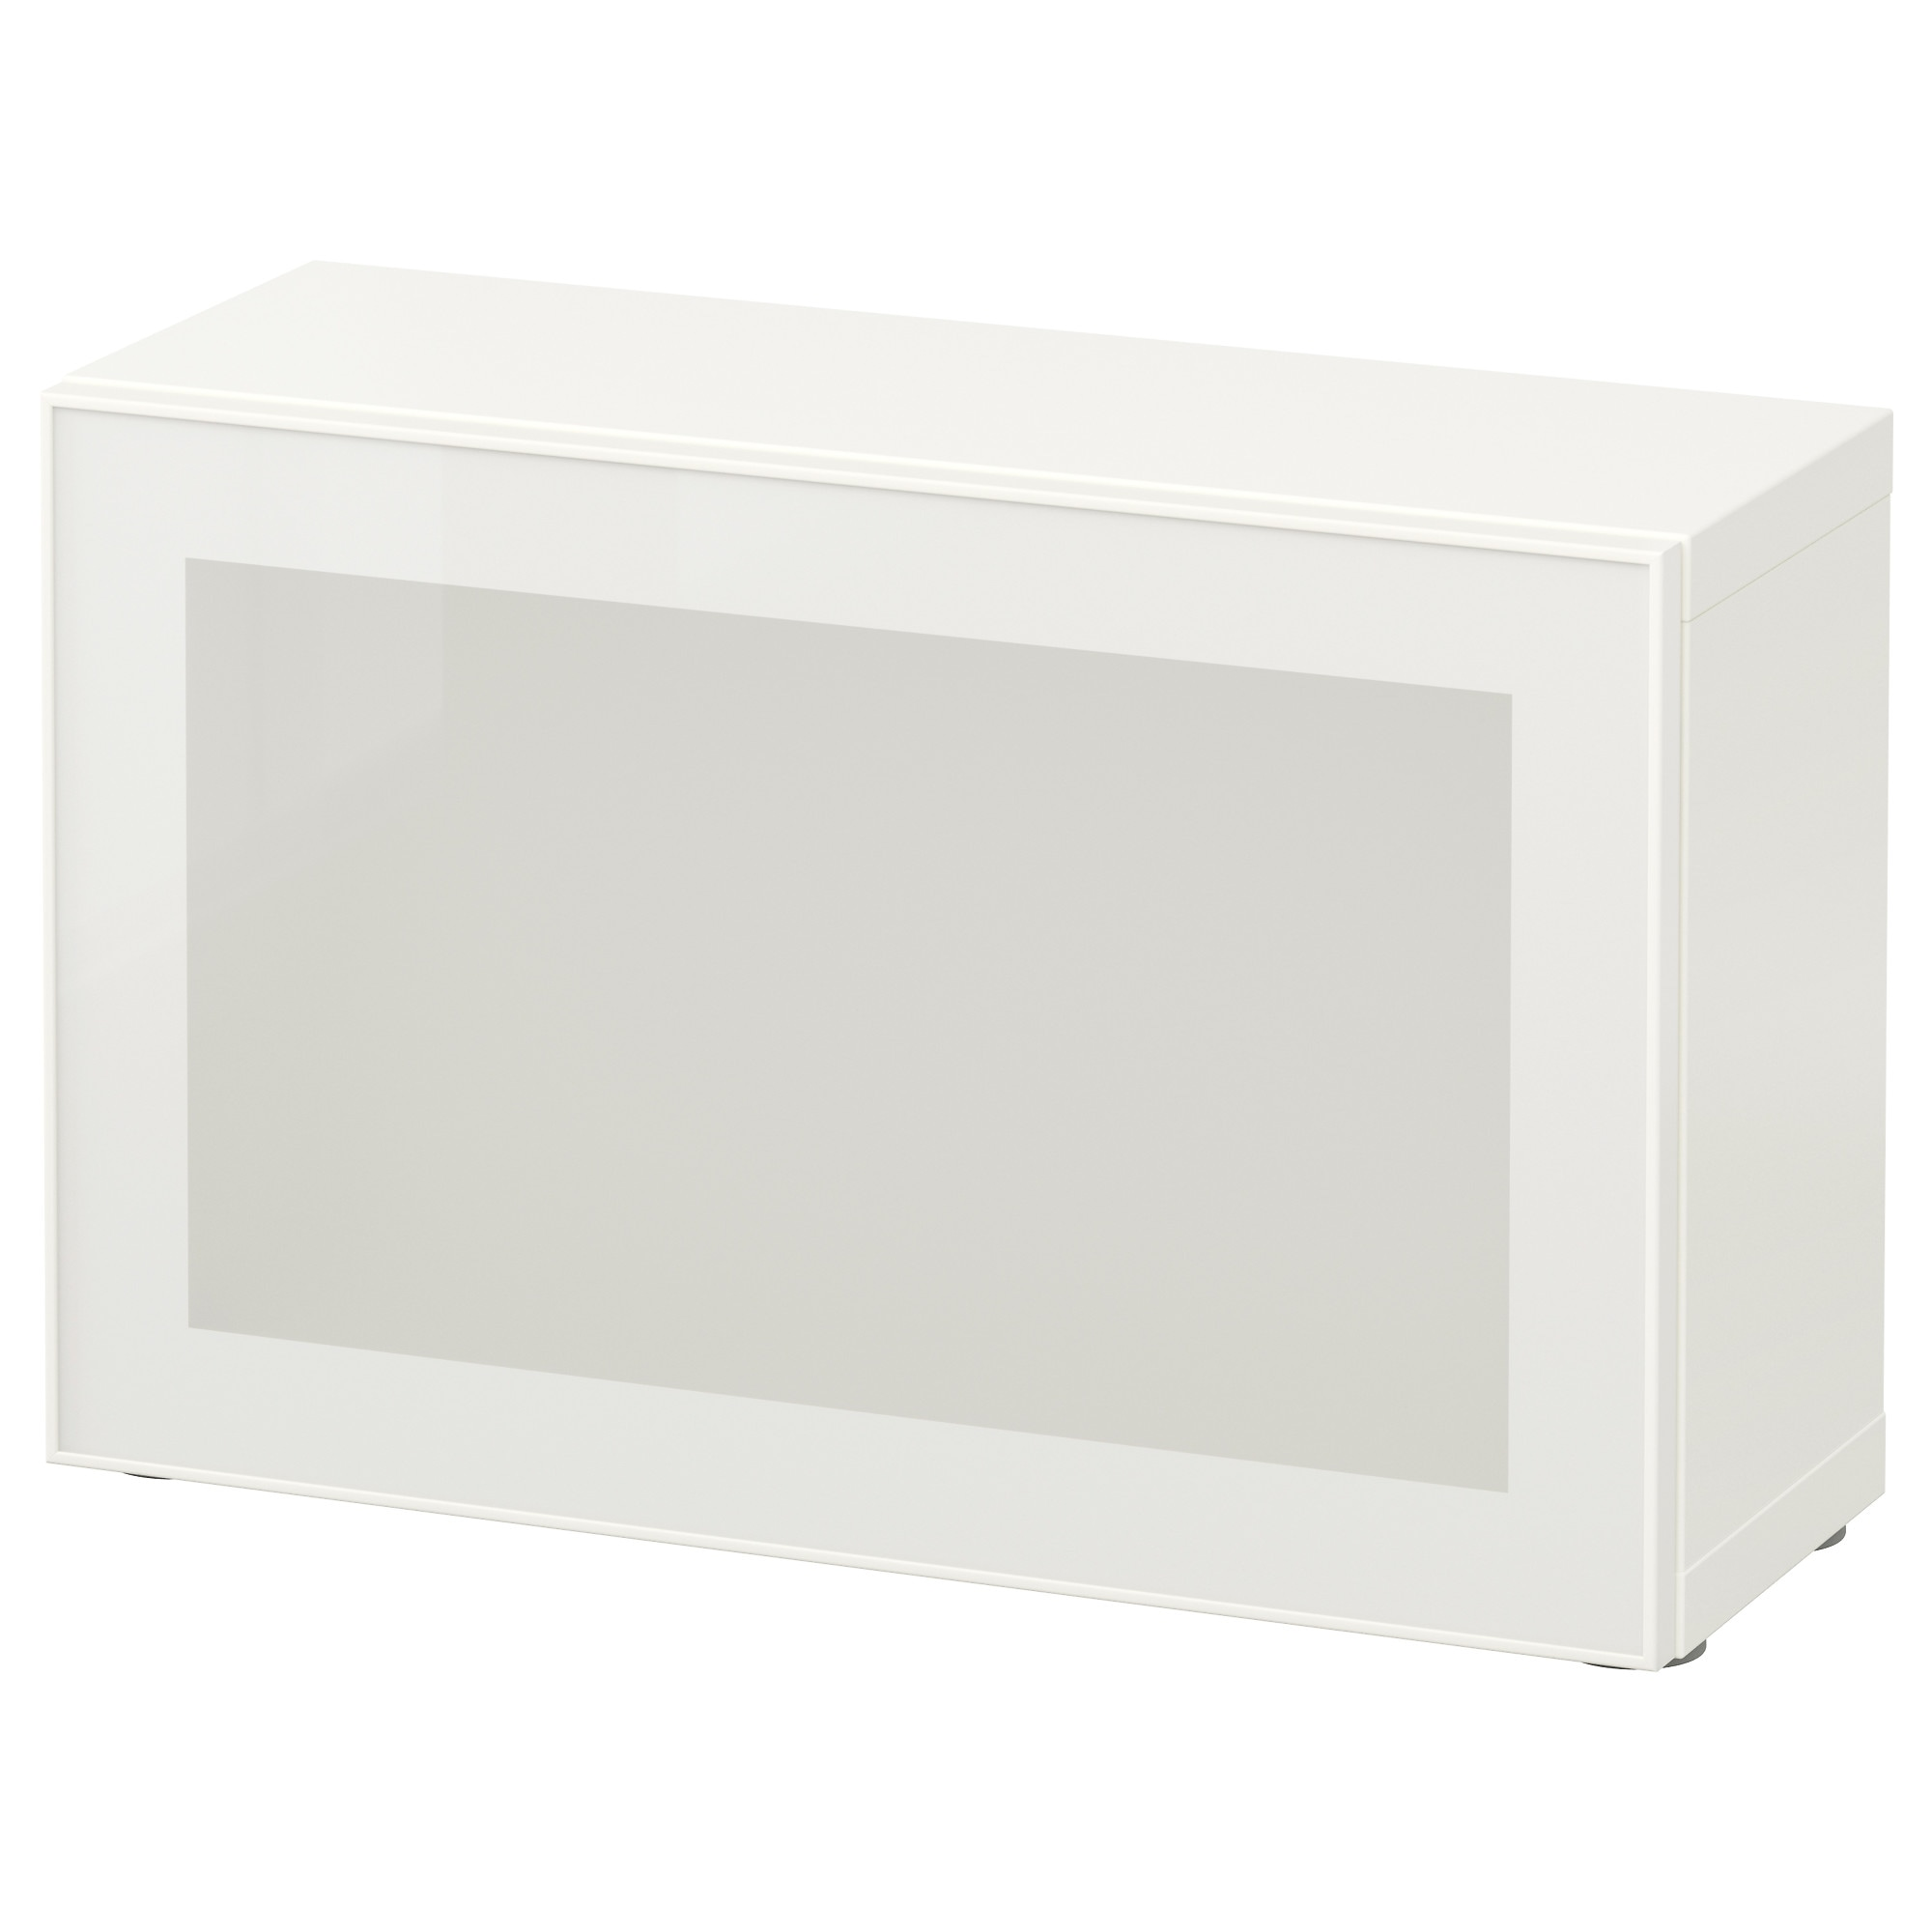 White frosted glass doors - Best Shelf Unit With Glass Door White Glassvik White Clear Glass Ikea